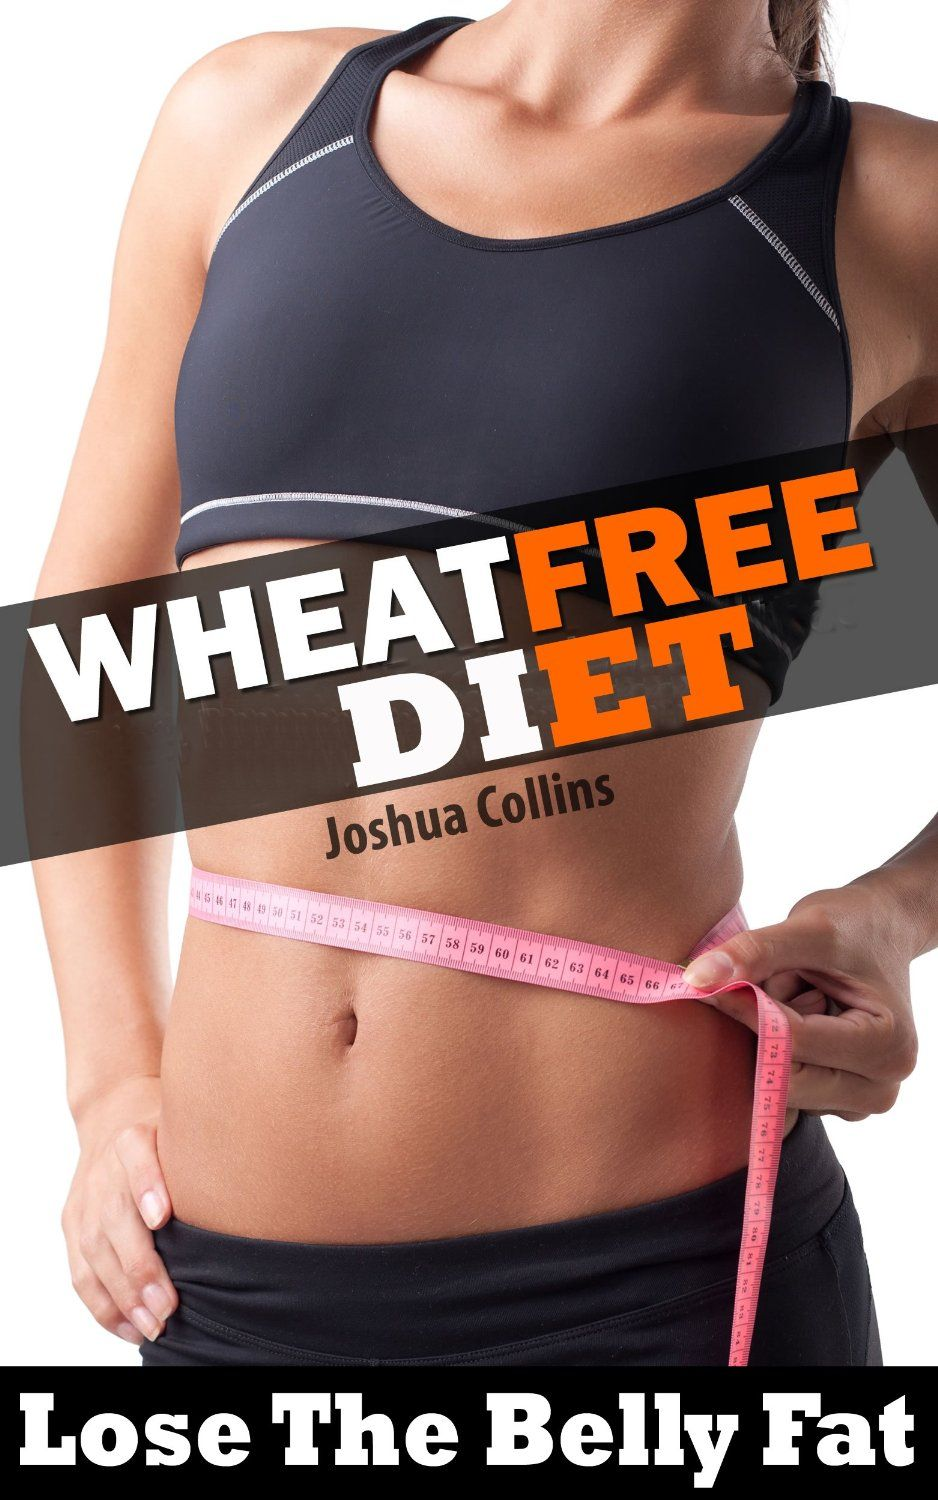 Soft belly fat weight loss image 6